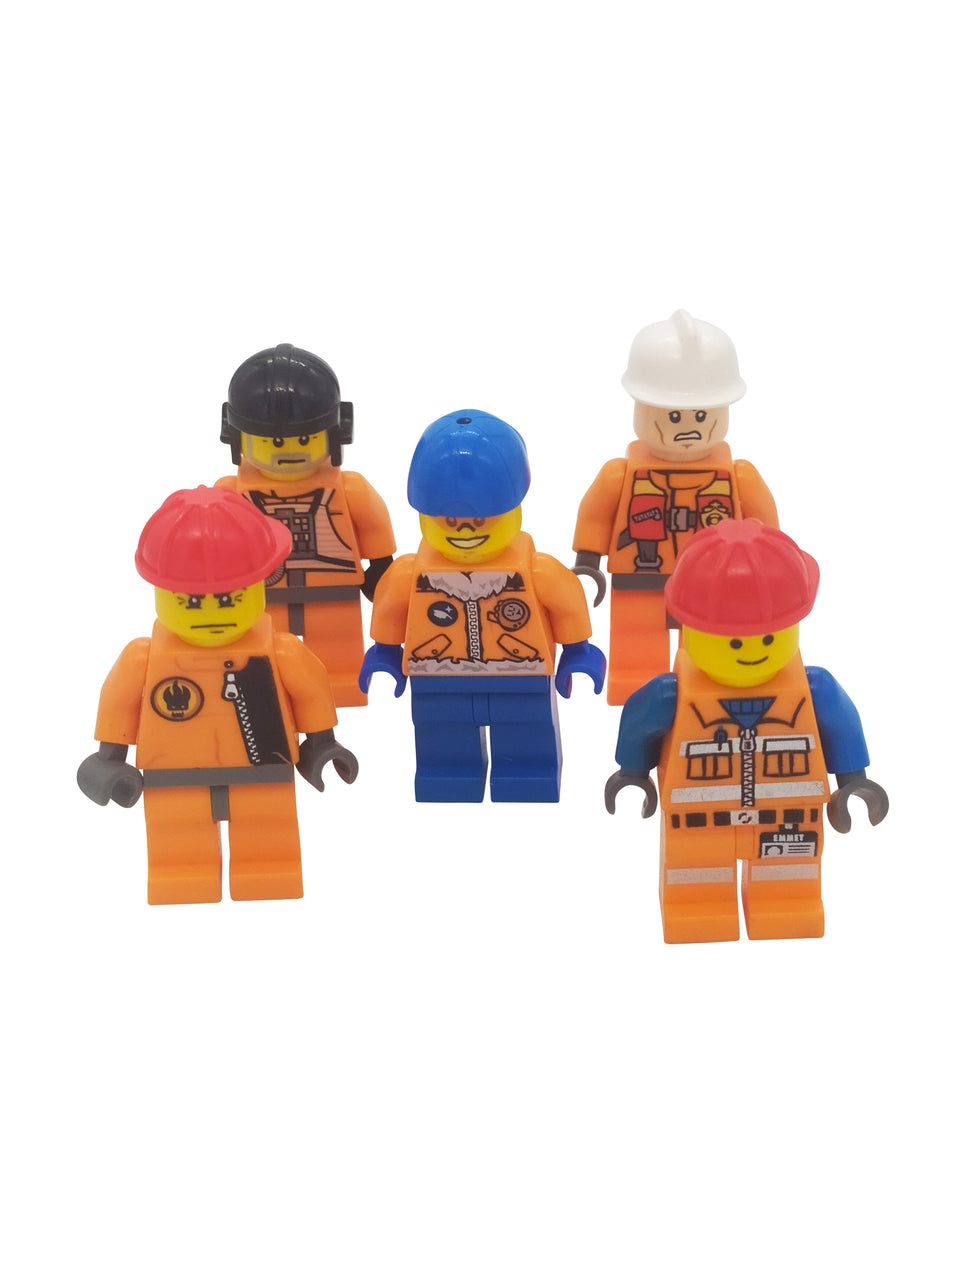 5 Lot Special orange Lego Minifigures